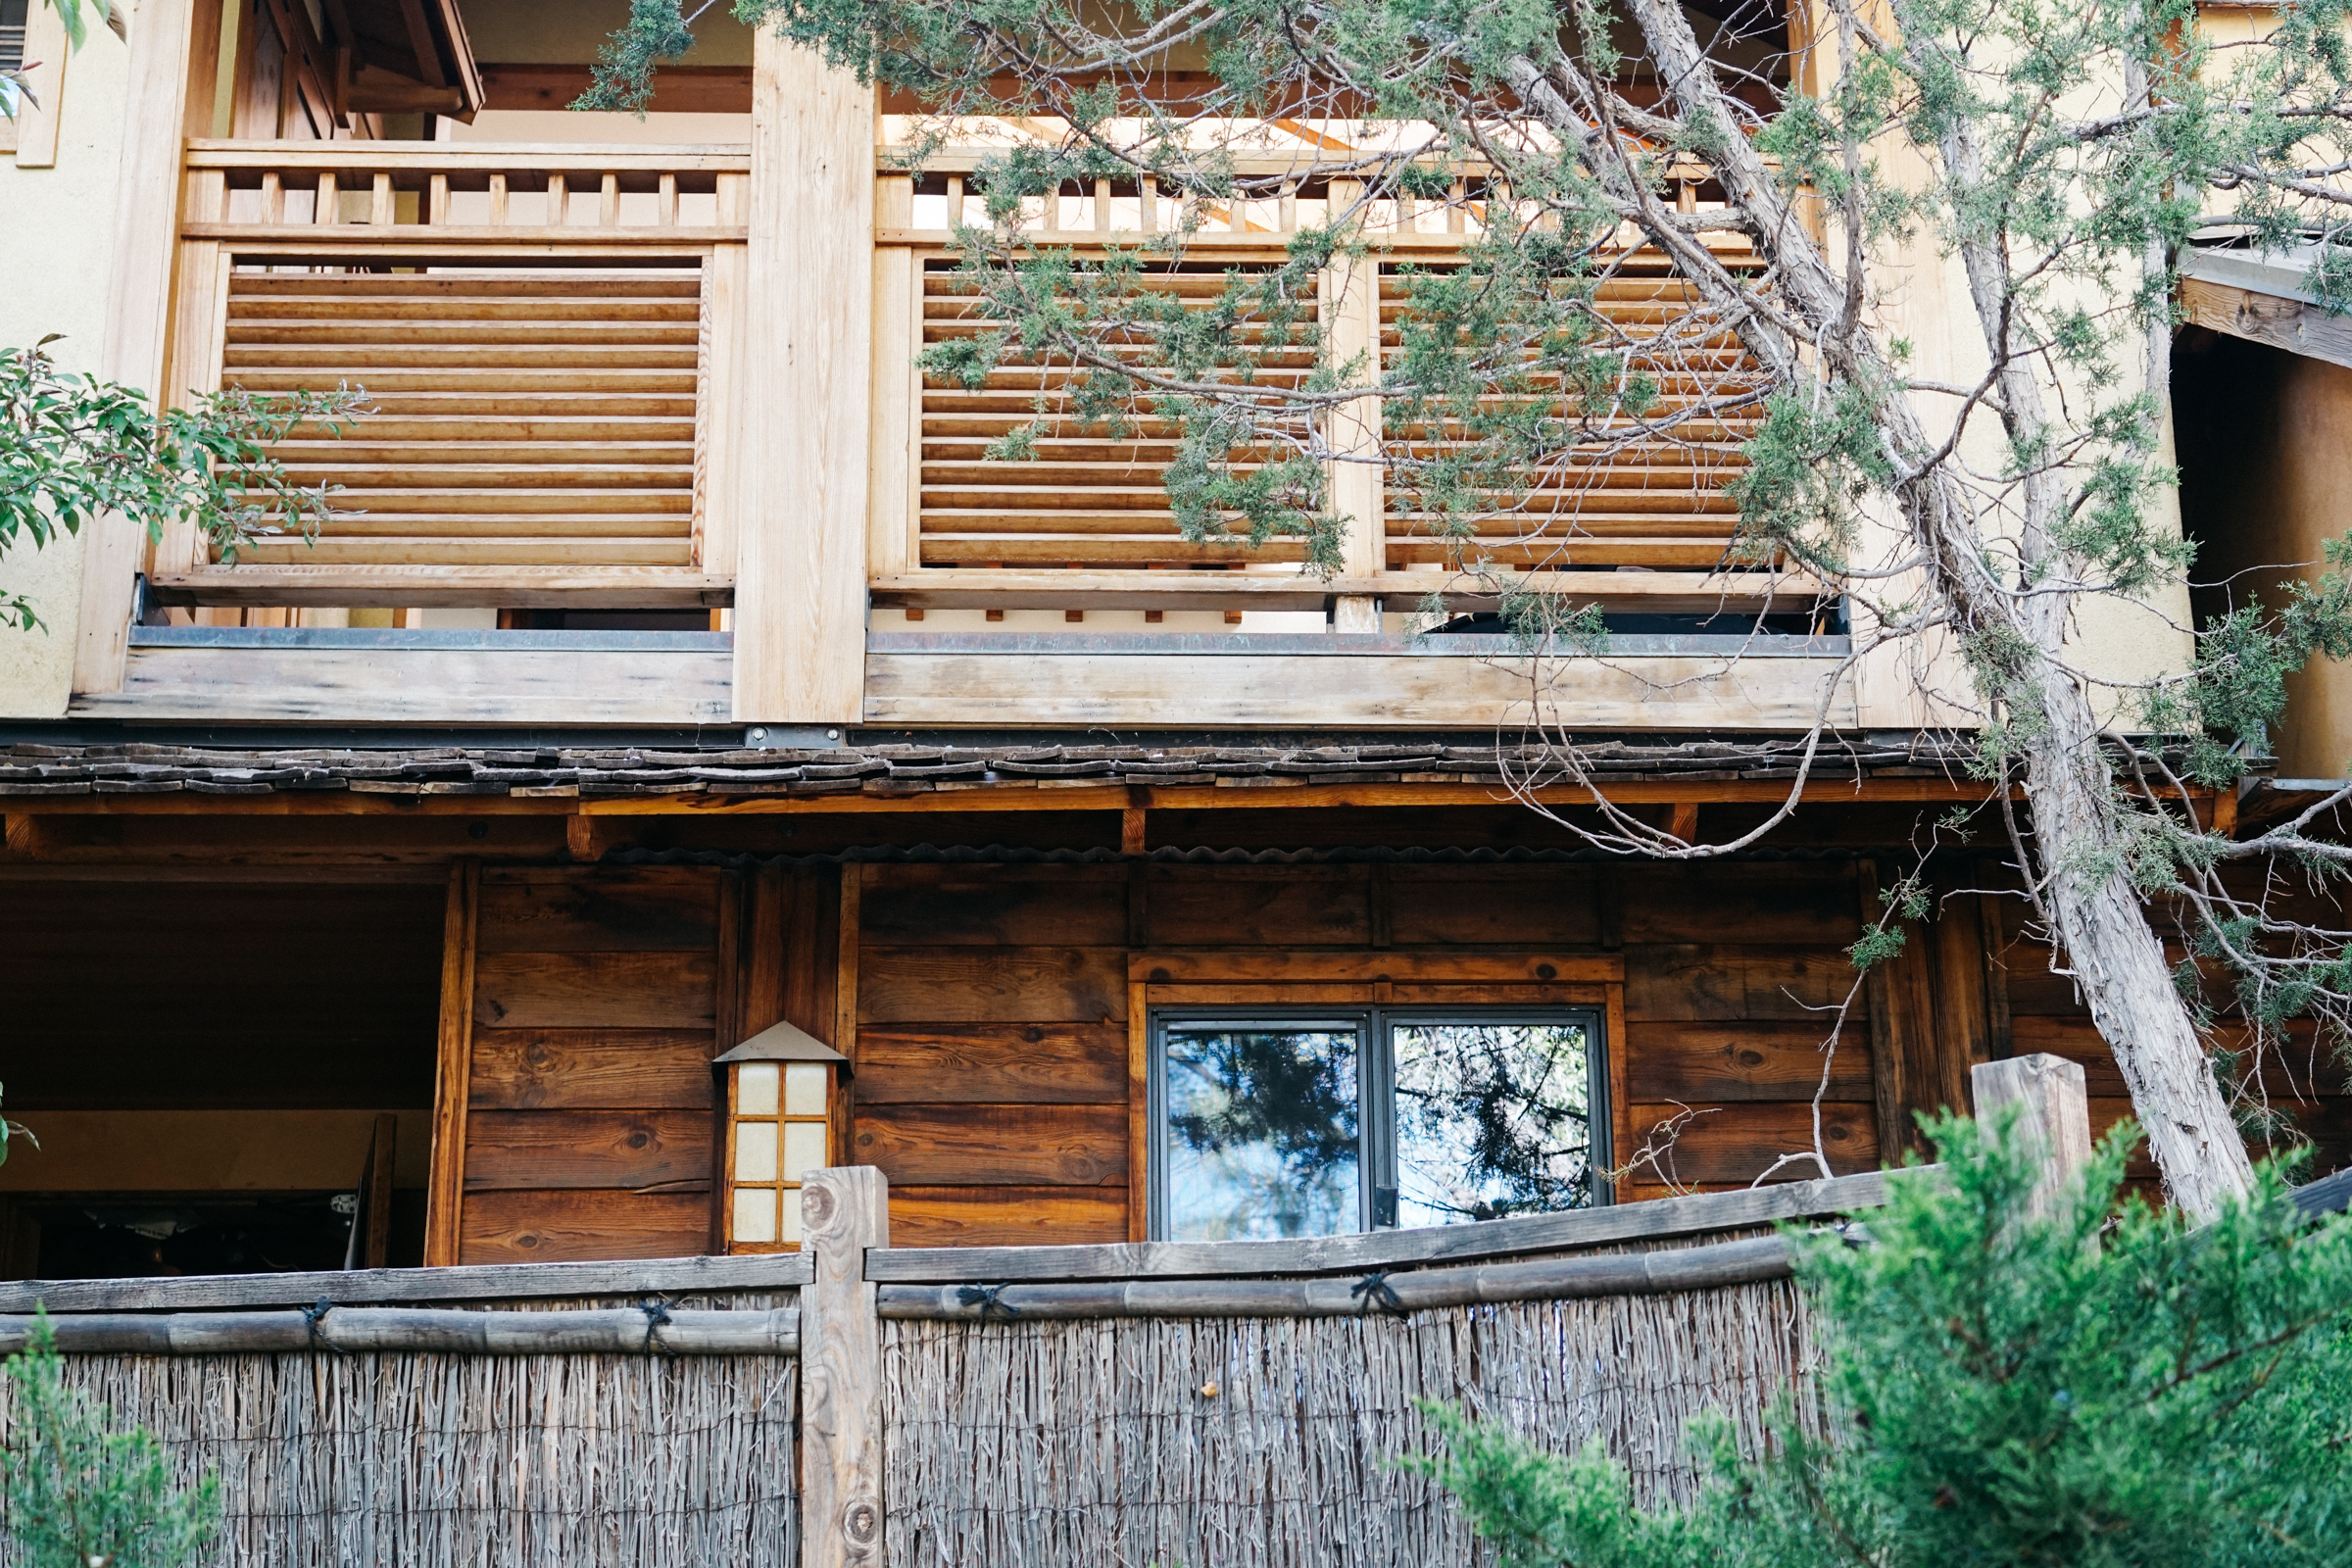 Best Places to Stay in New Mexico